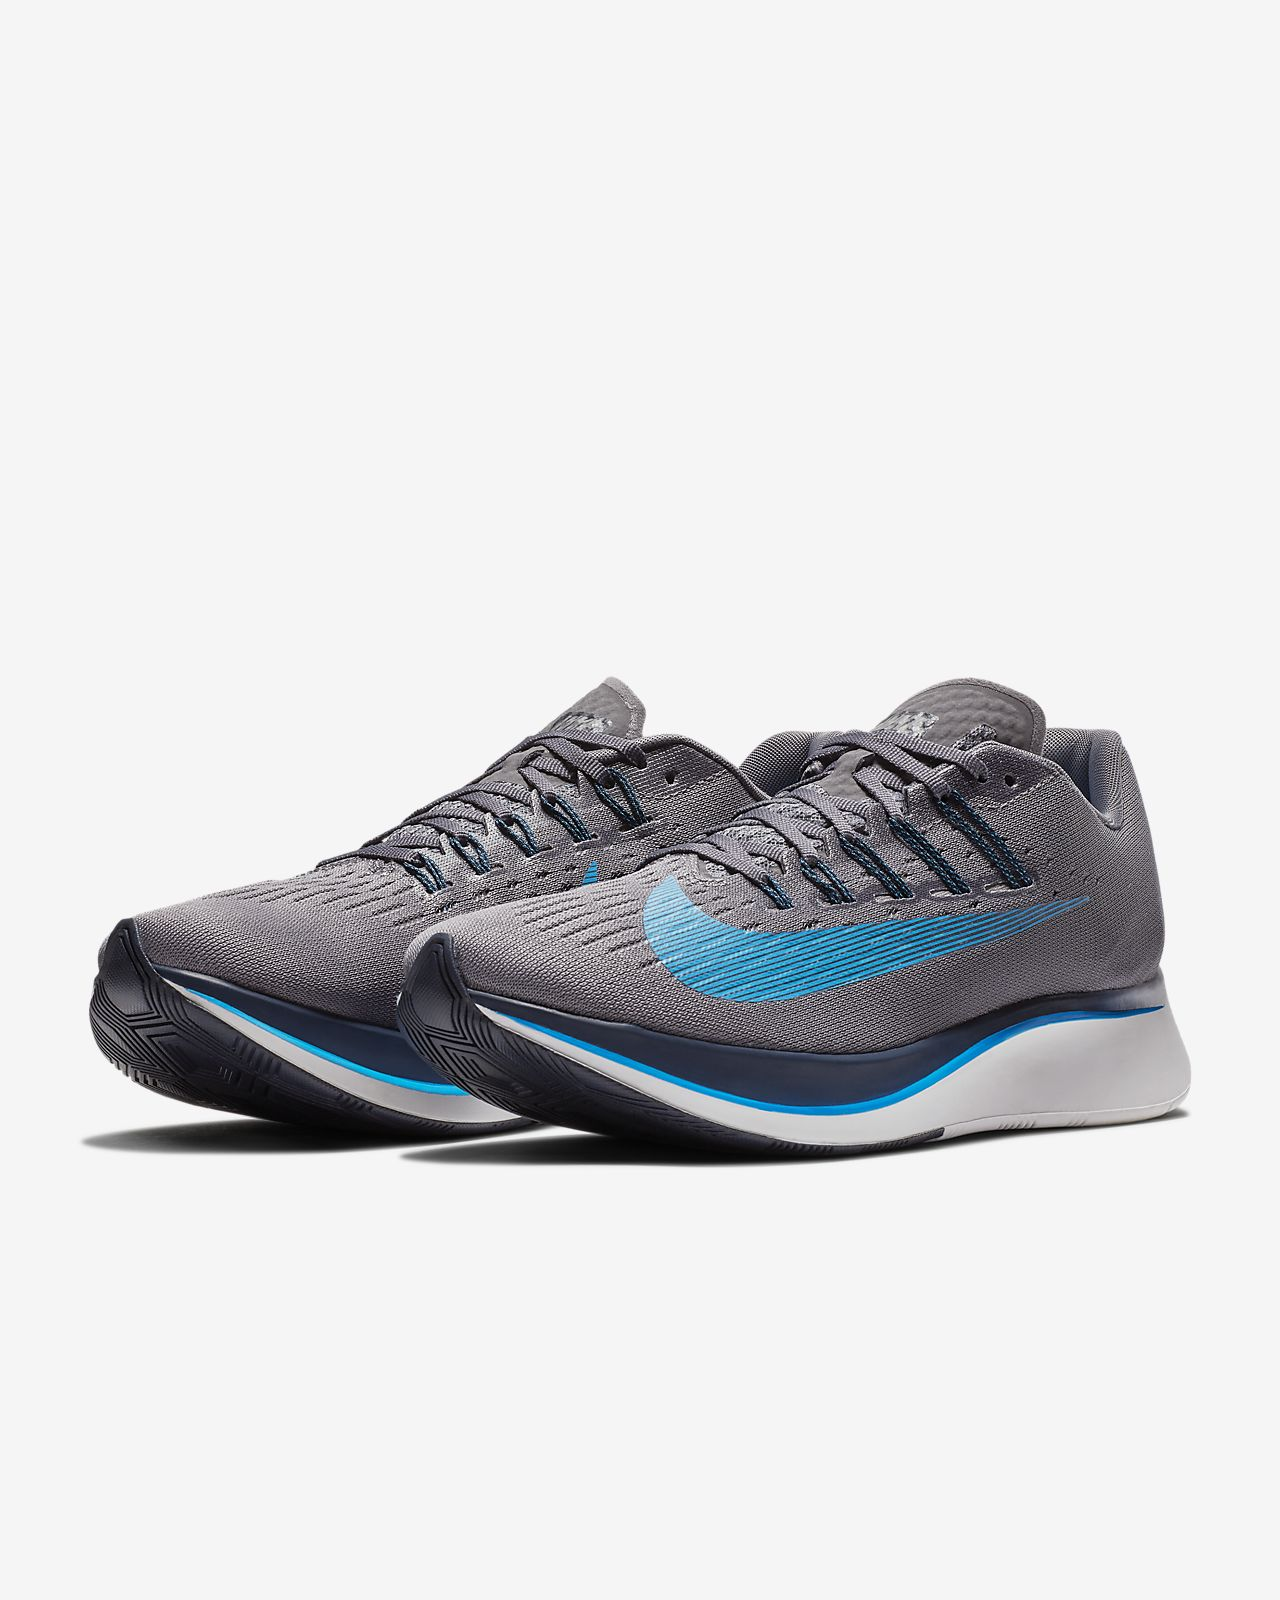 3576877255e3 Low Resolution Nike Zoom Fly Men s Running Shoe Nike Zoom Fly Men s Running  Shoe